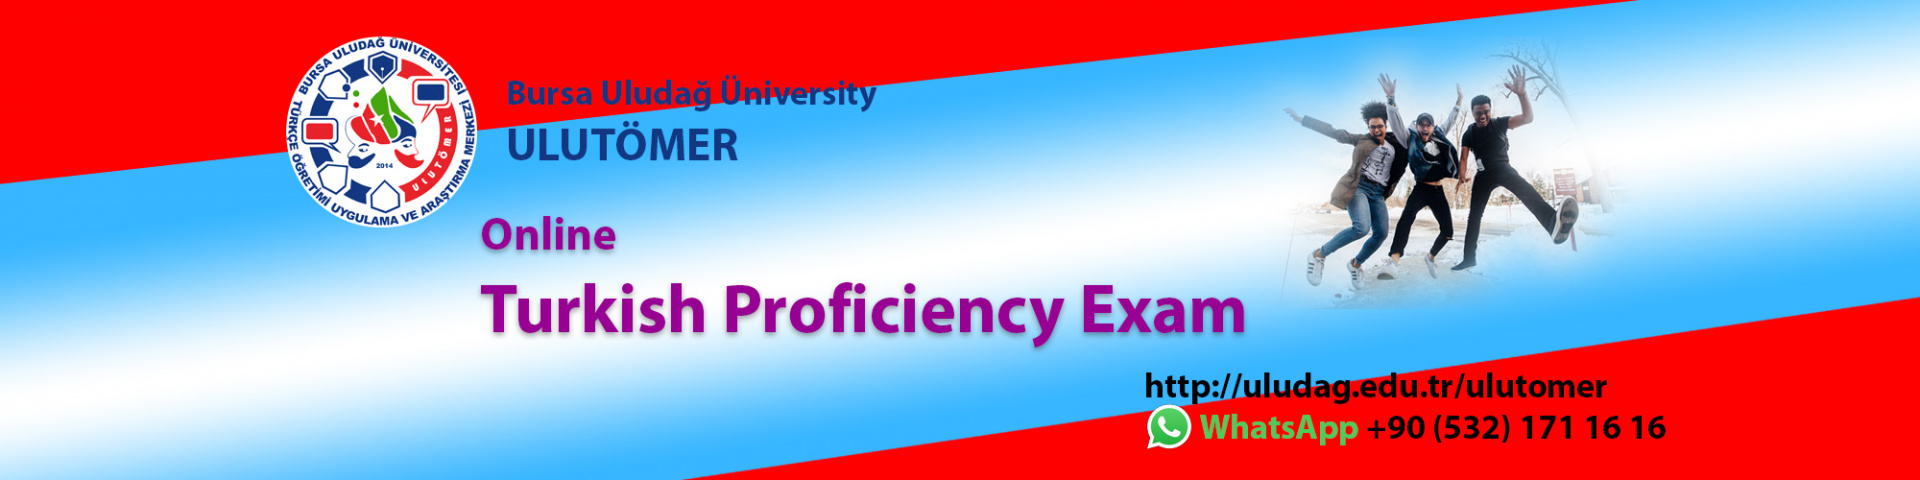 Online Turkish Proficiency Exam